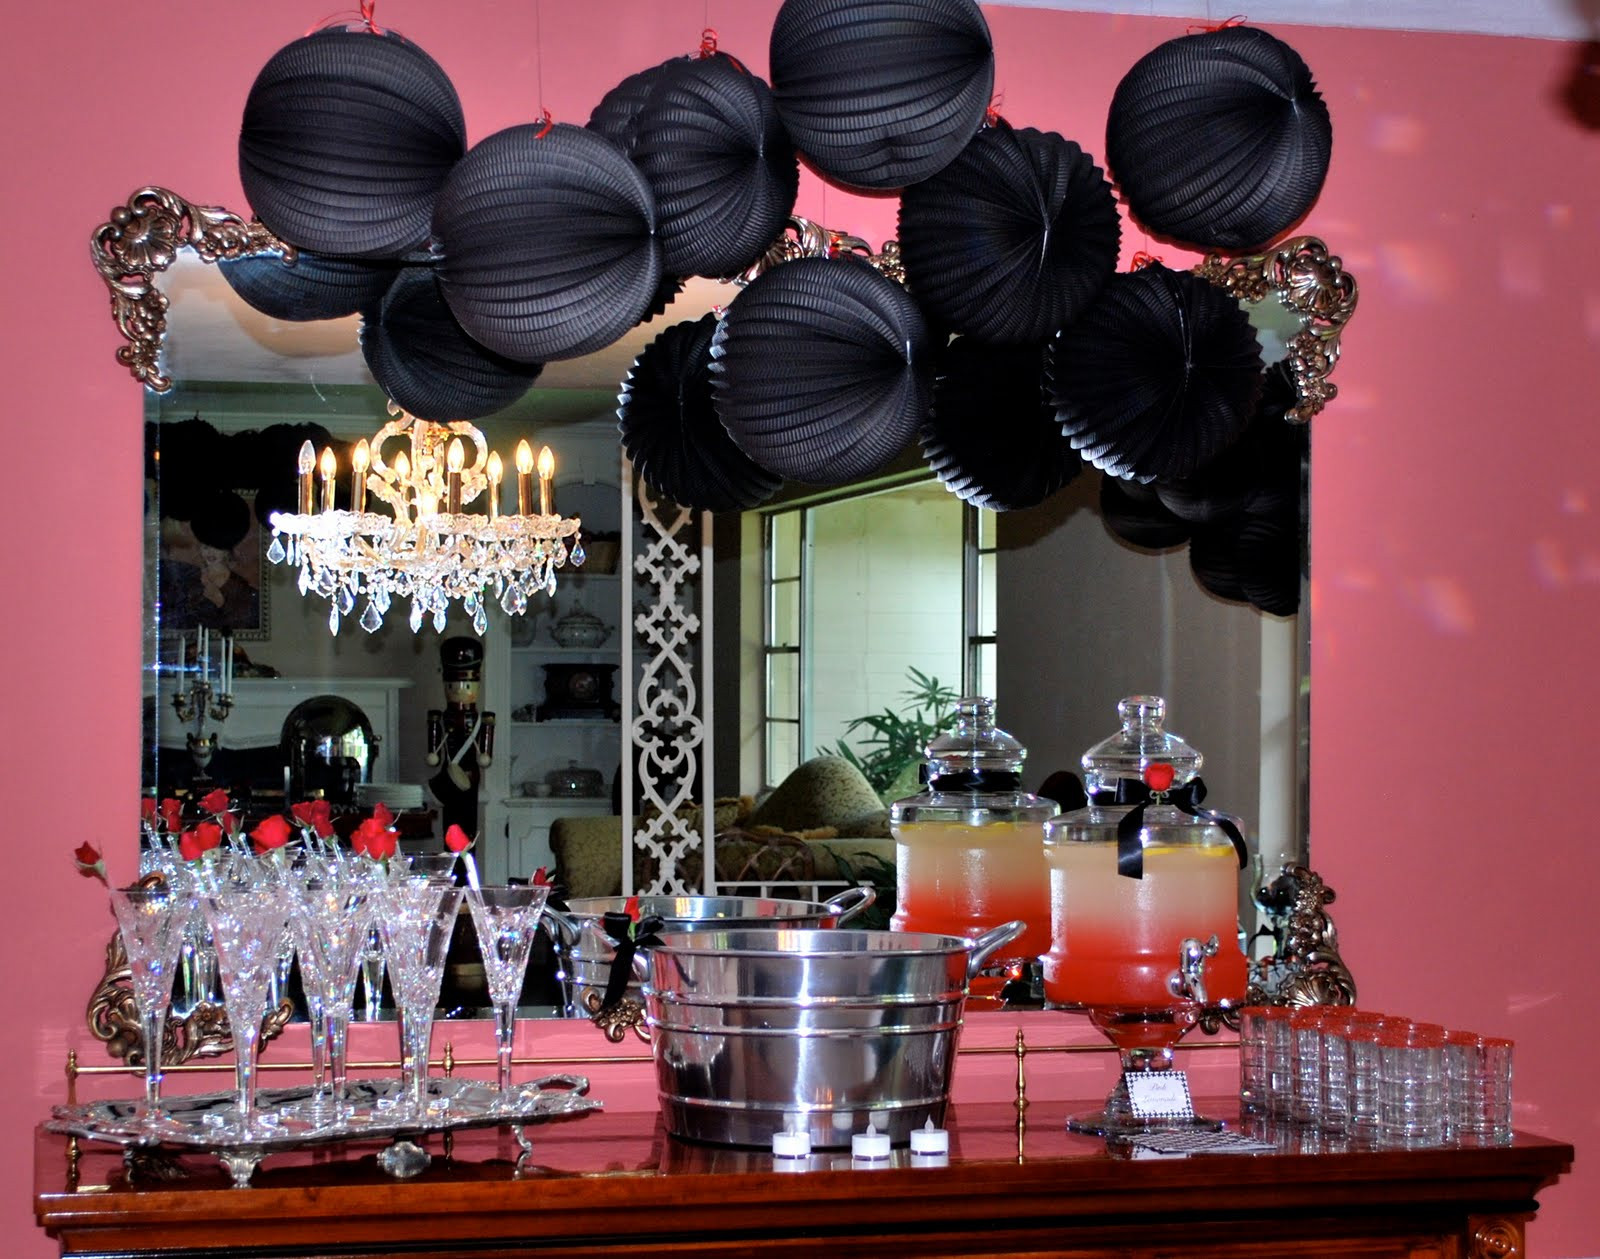 Best ideas about 40th Birthday Party Ideas . Save or Pin Goosie Girl A 40th Birthday Party Now.